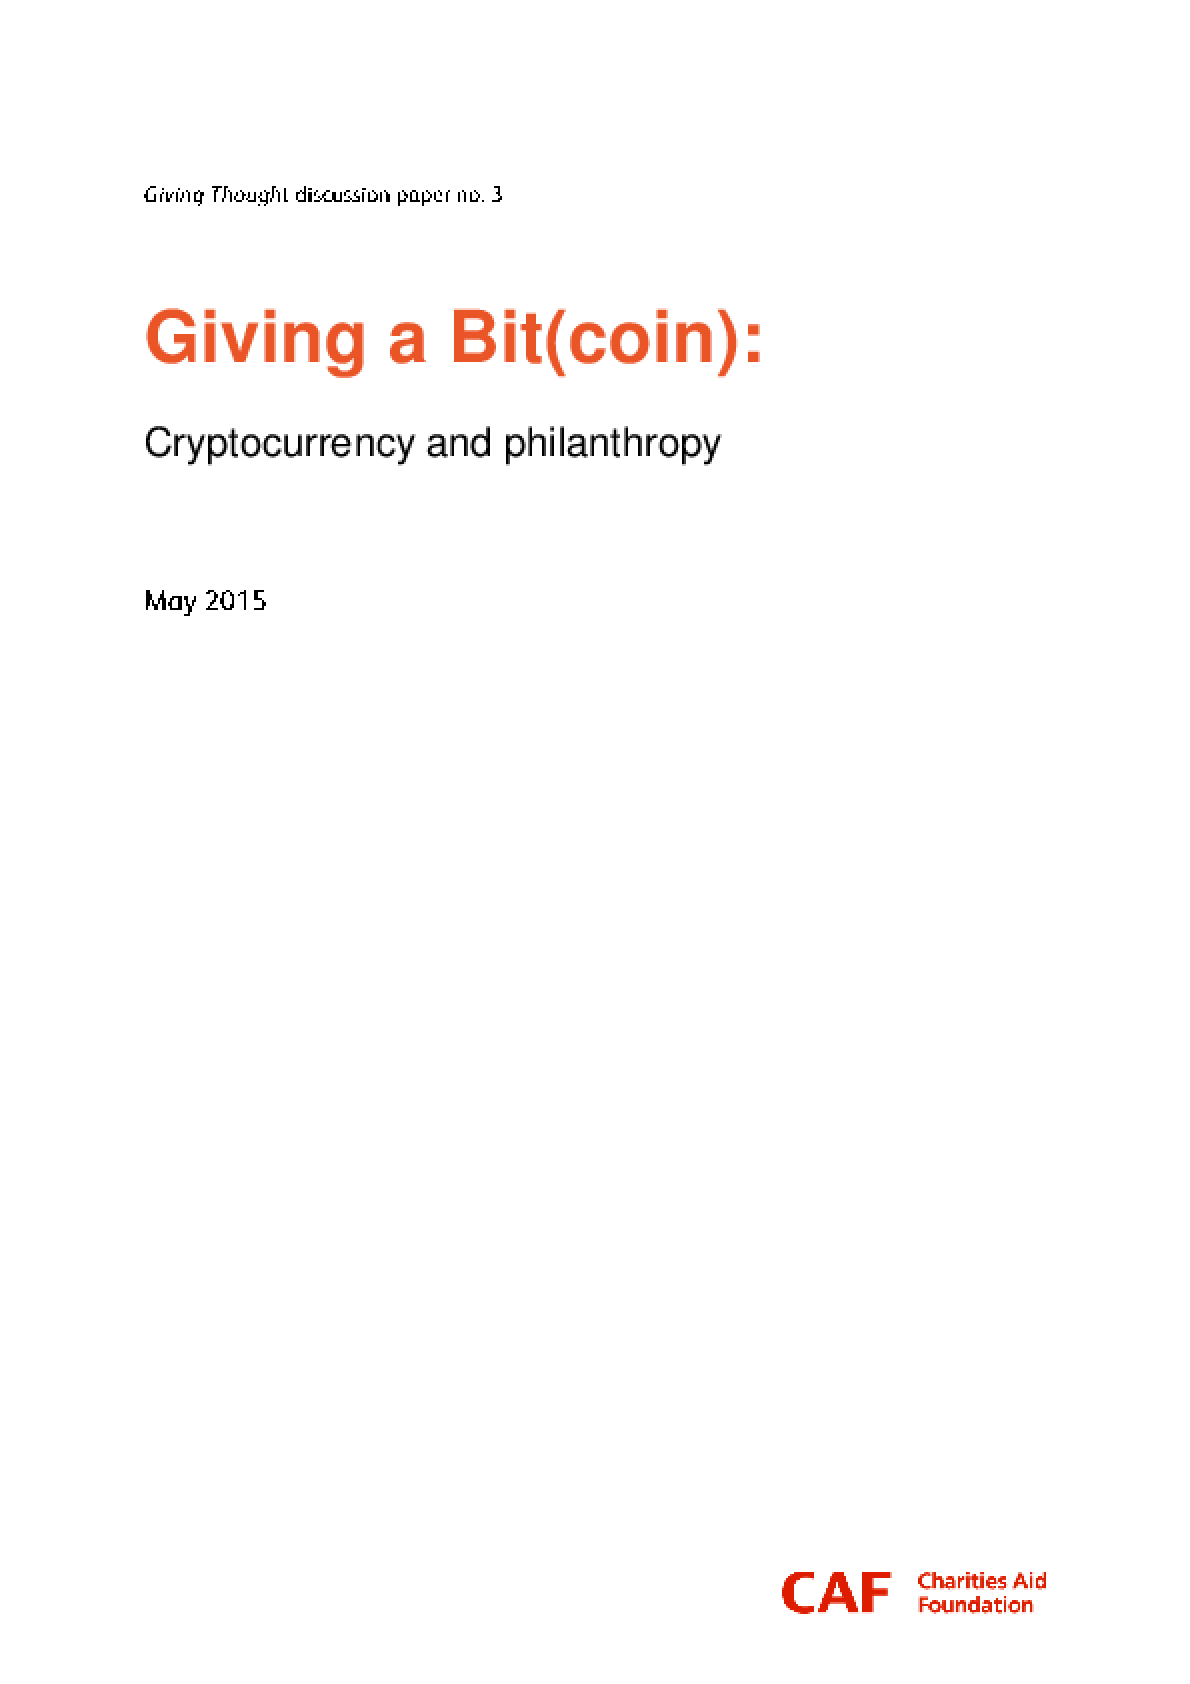 Giving a Bit(coin): Cryptocurrency and Philanthropy